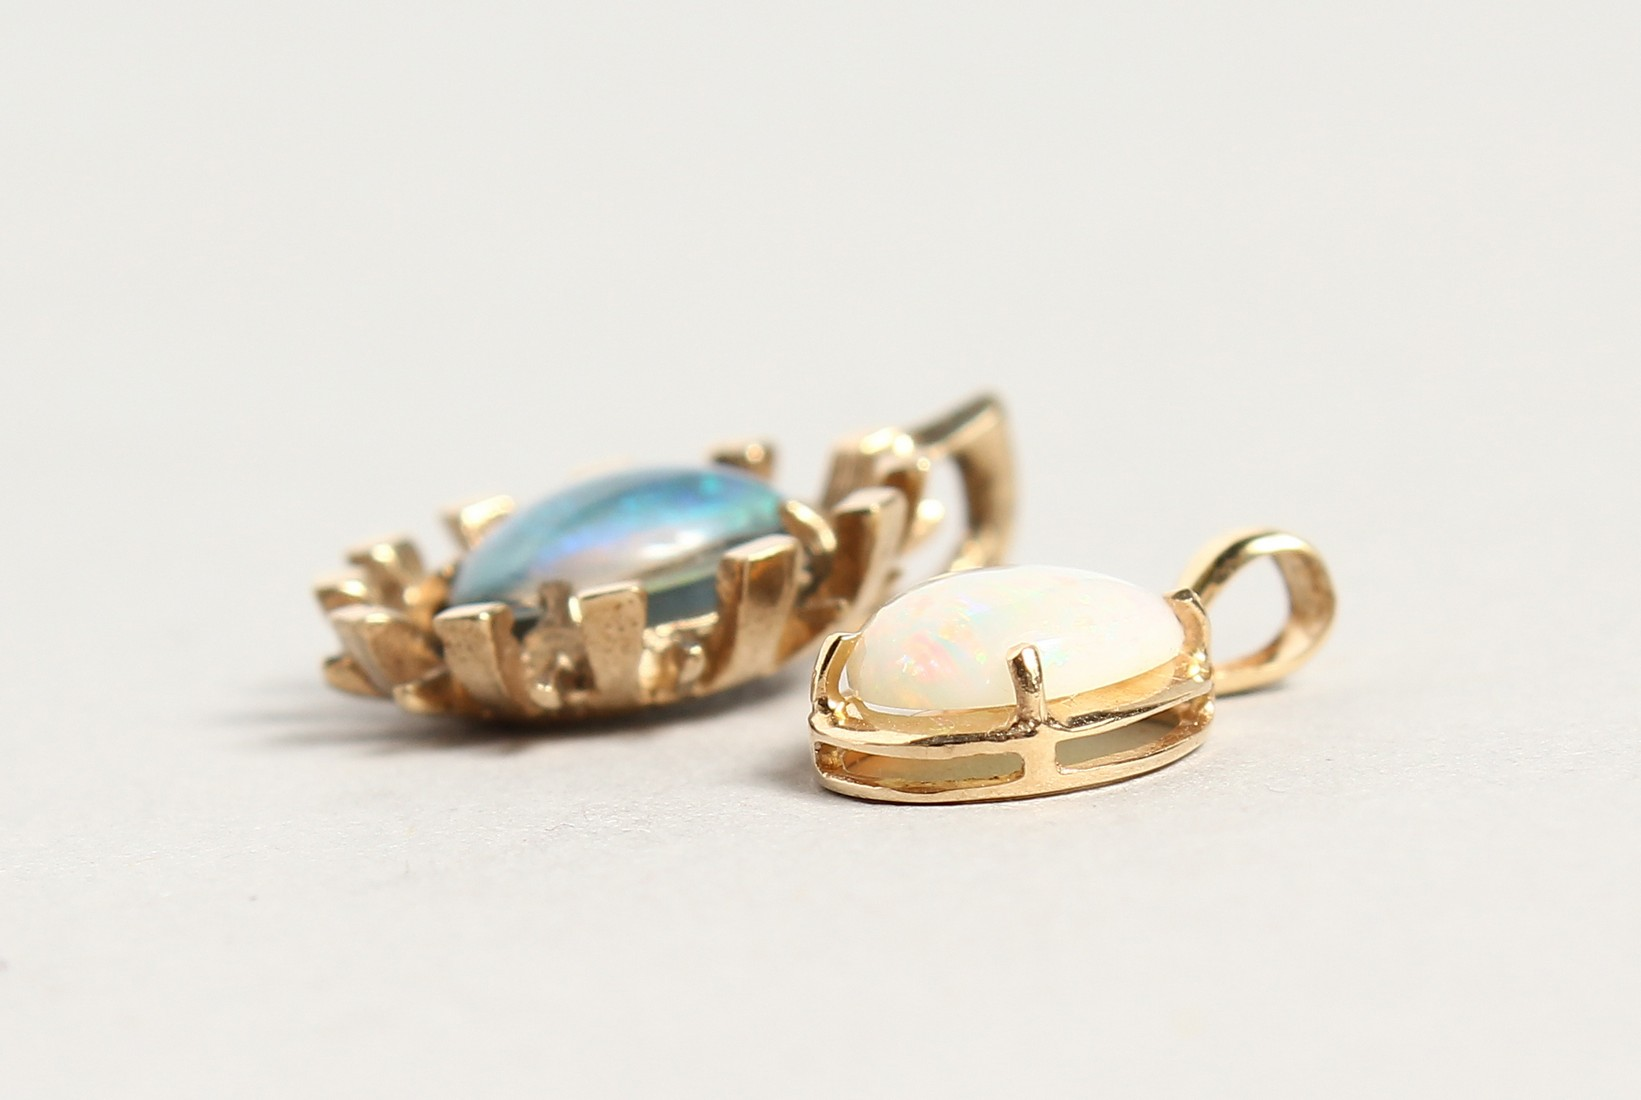 TWO SMALL GOLD OPAL PENDANTS - Image 2 of 3